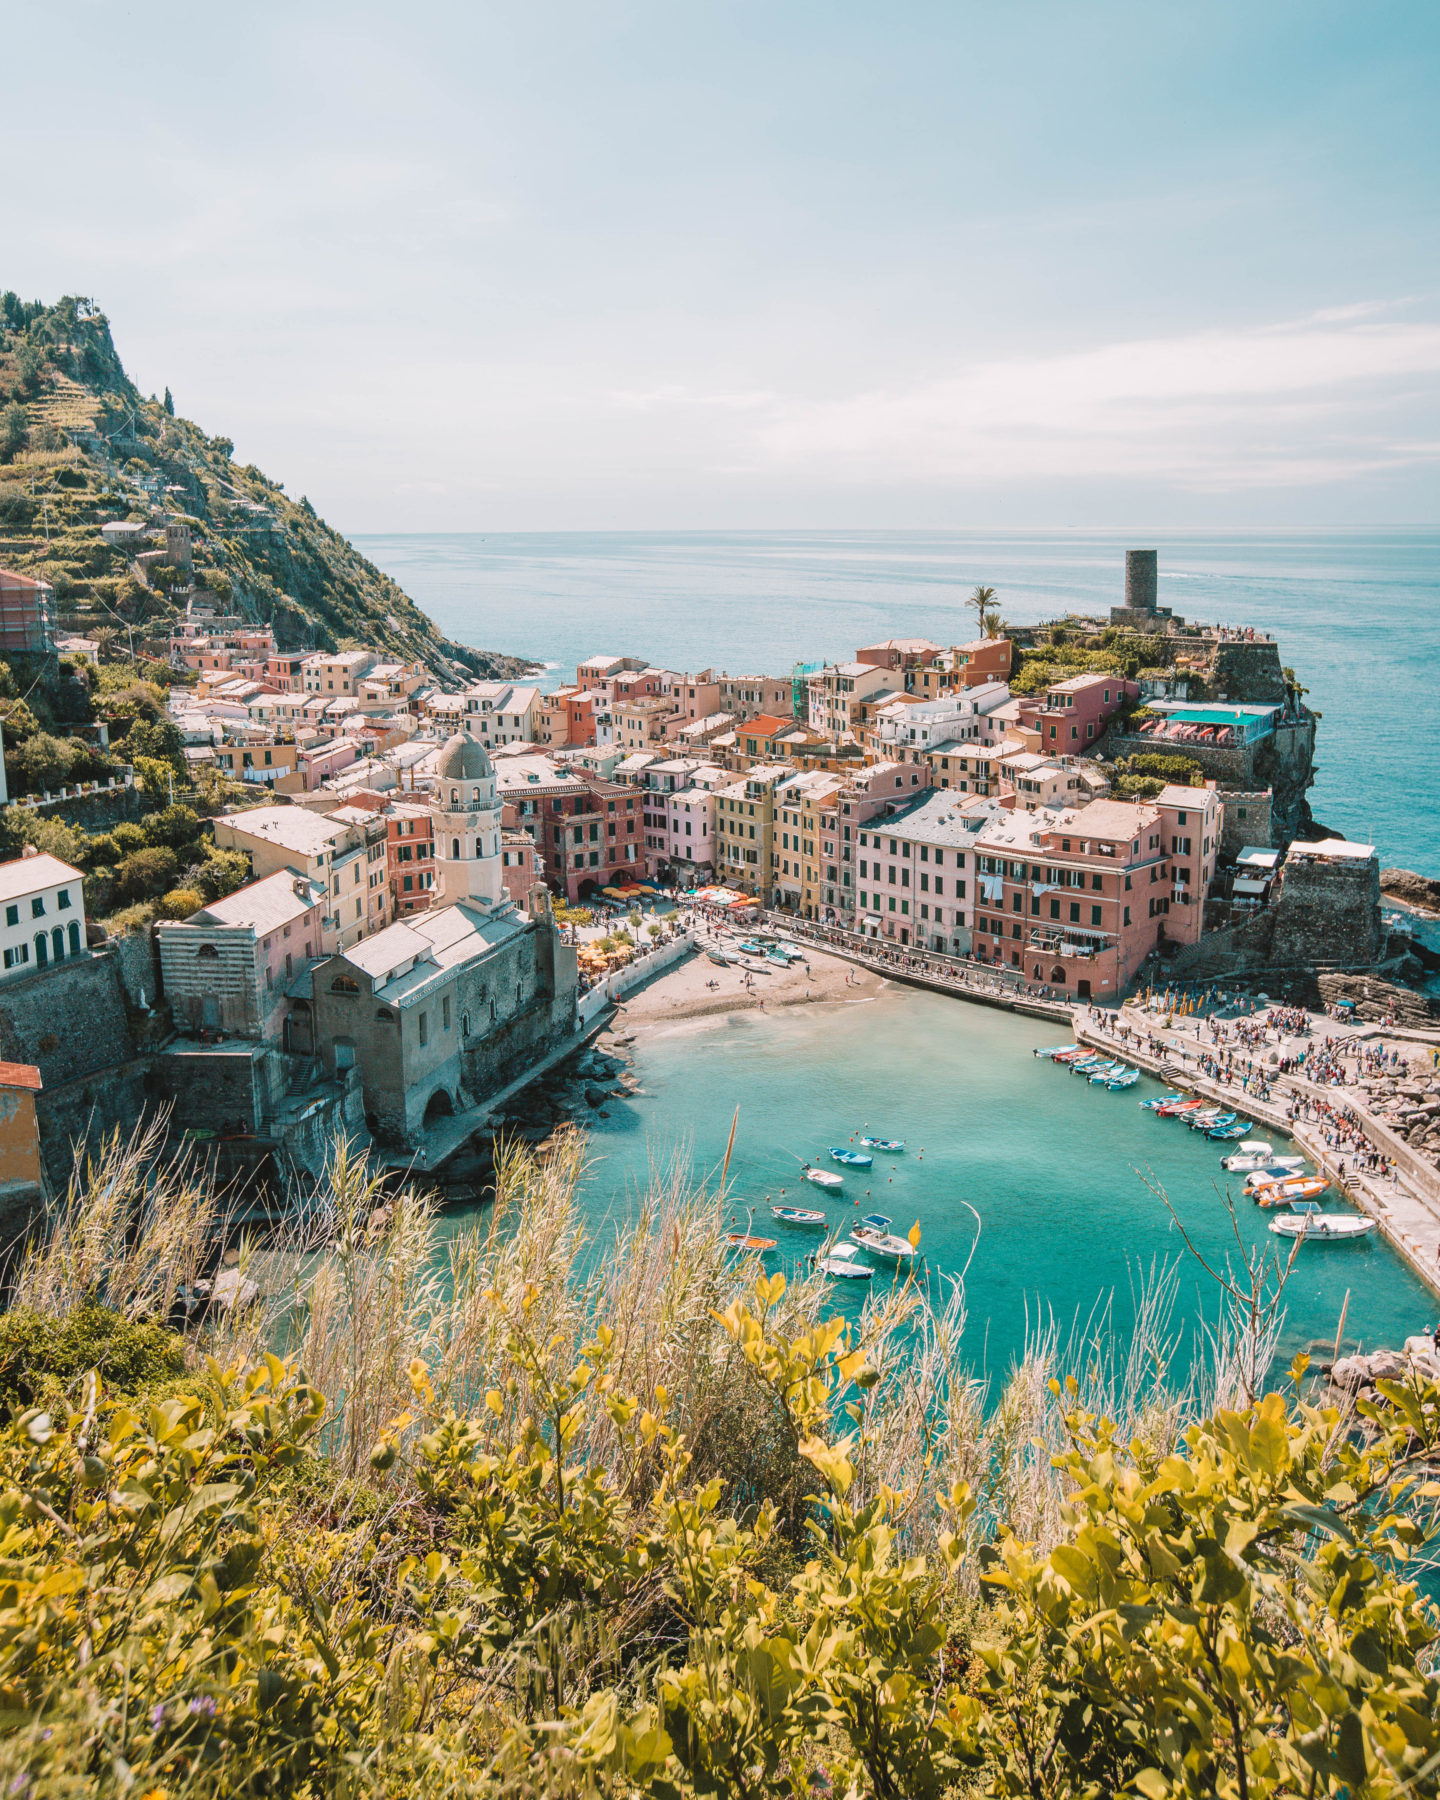 Dying to visit Cinque Terre? I've crafted your absolute perfect Cinque Terre day trip to visit all five villages! Check it out for yourself!